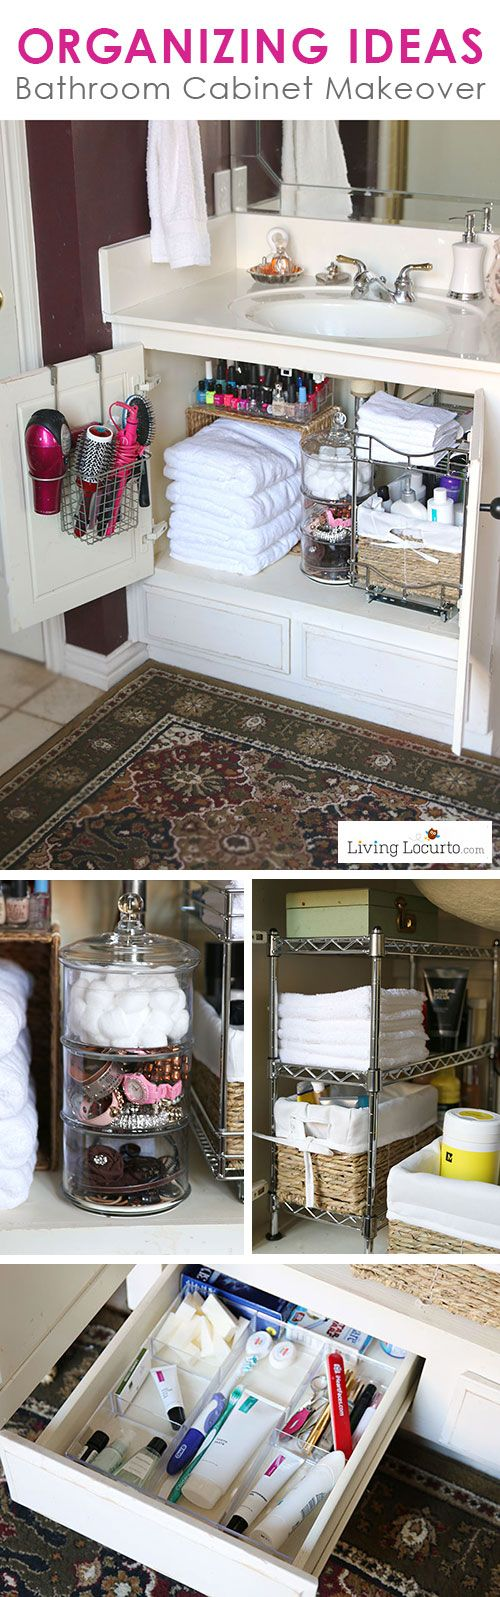 storage ideas 10